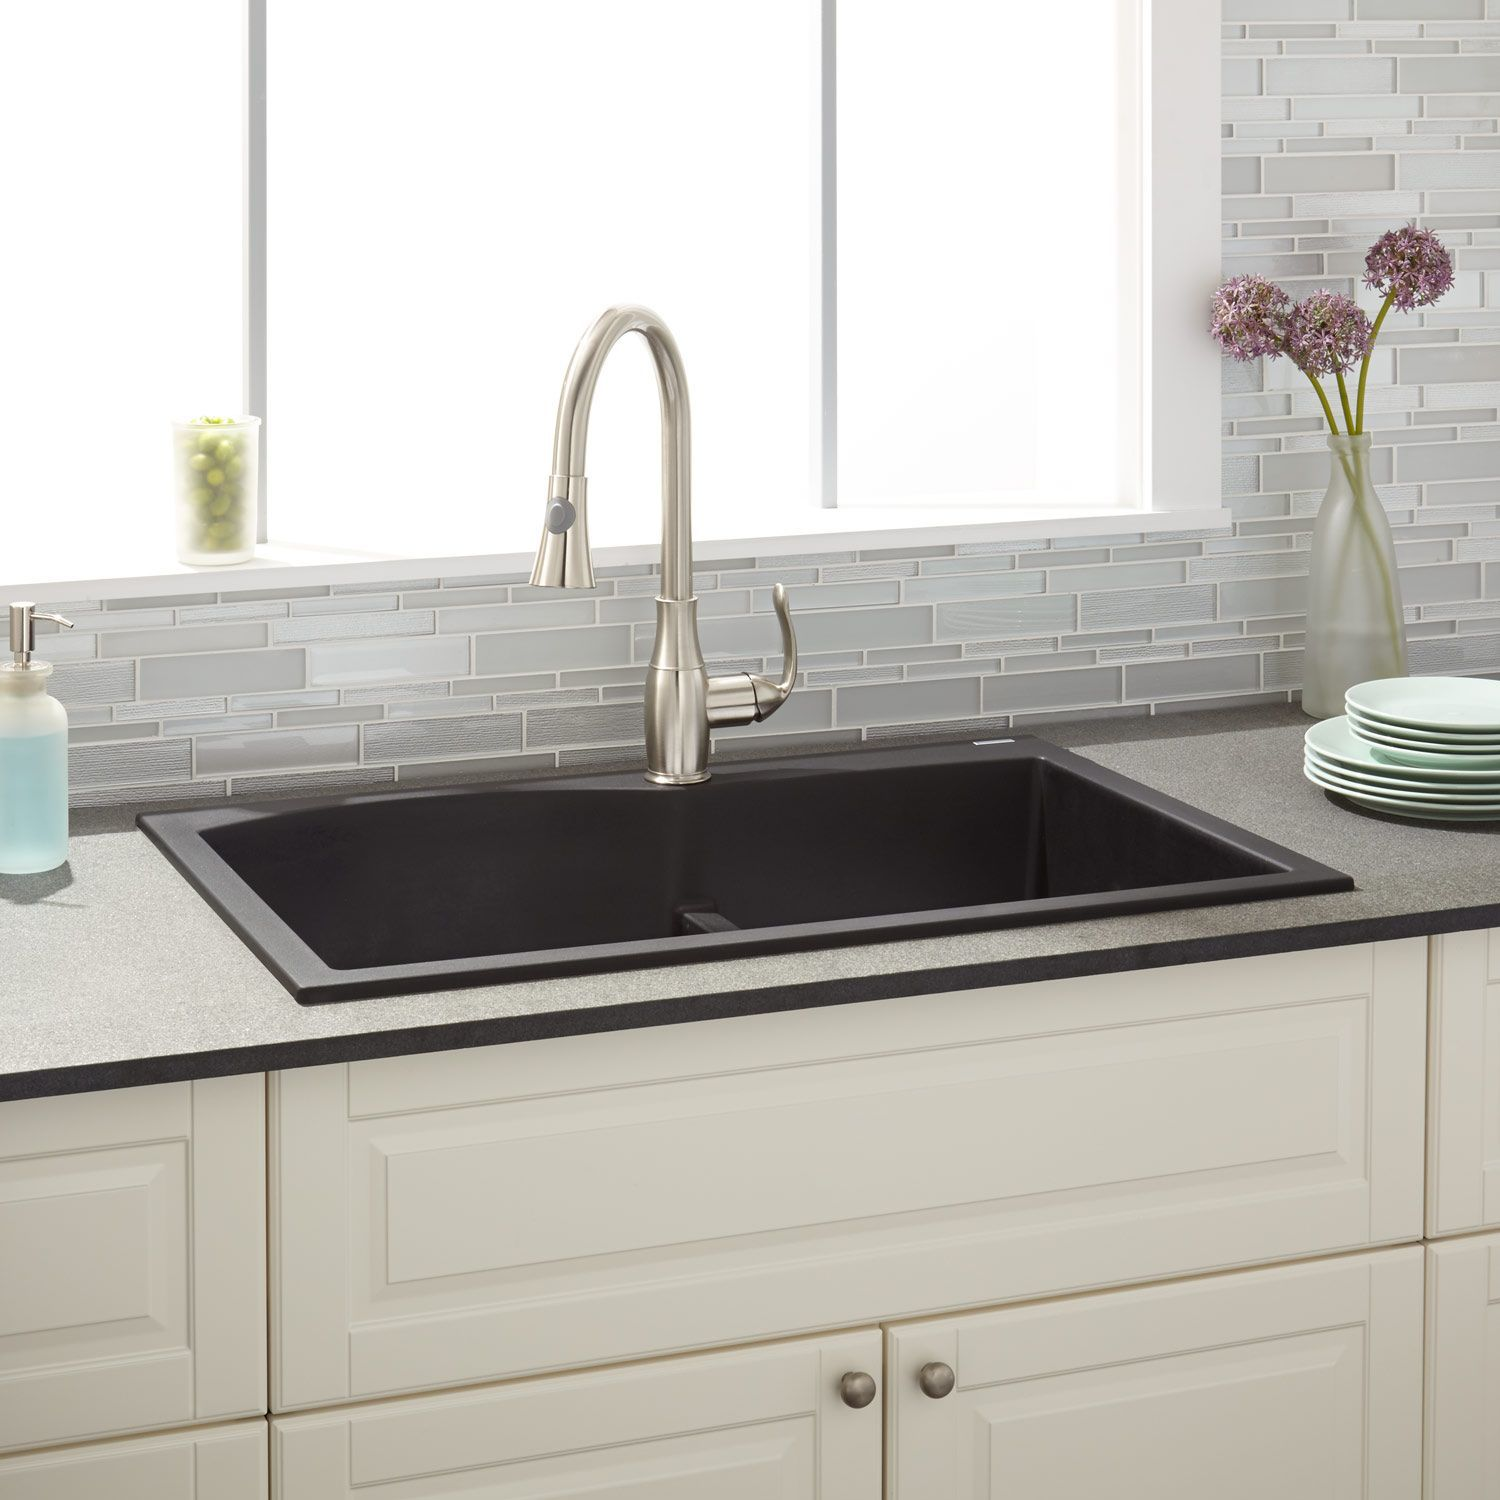 33 walland 60 40 double bowl drop in granite composite sink black rh pinterest com